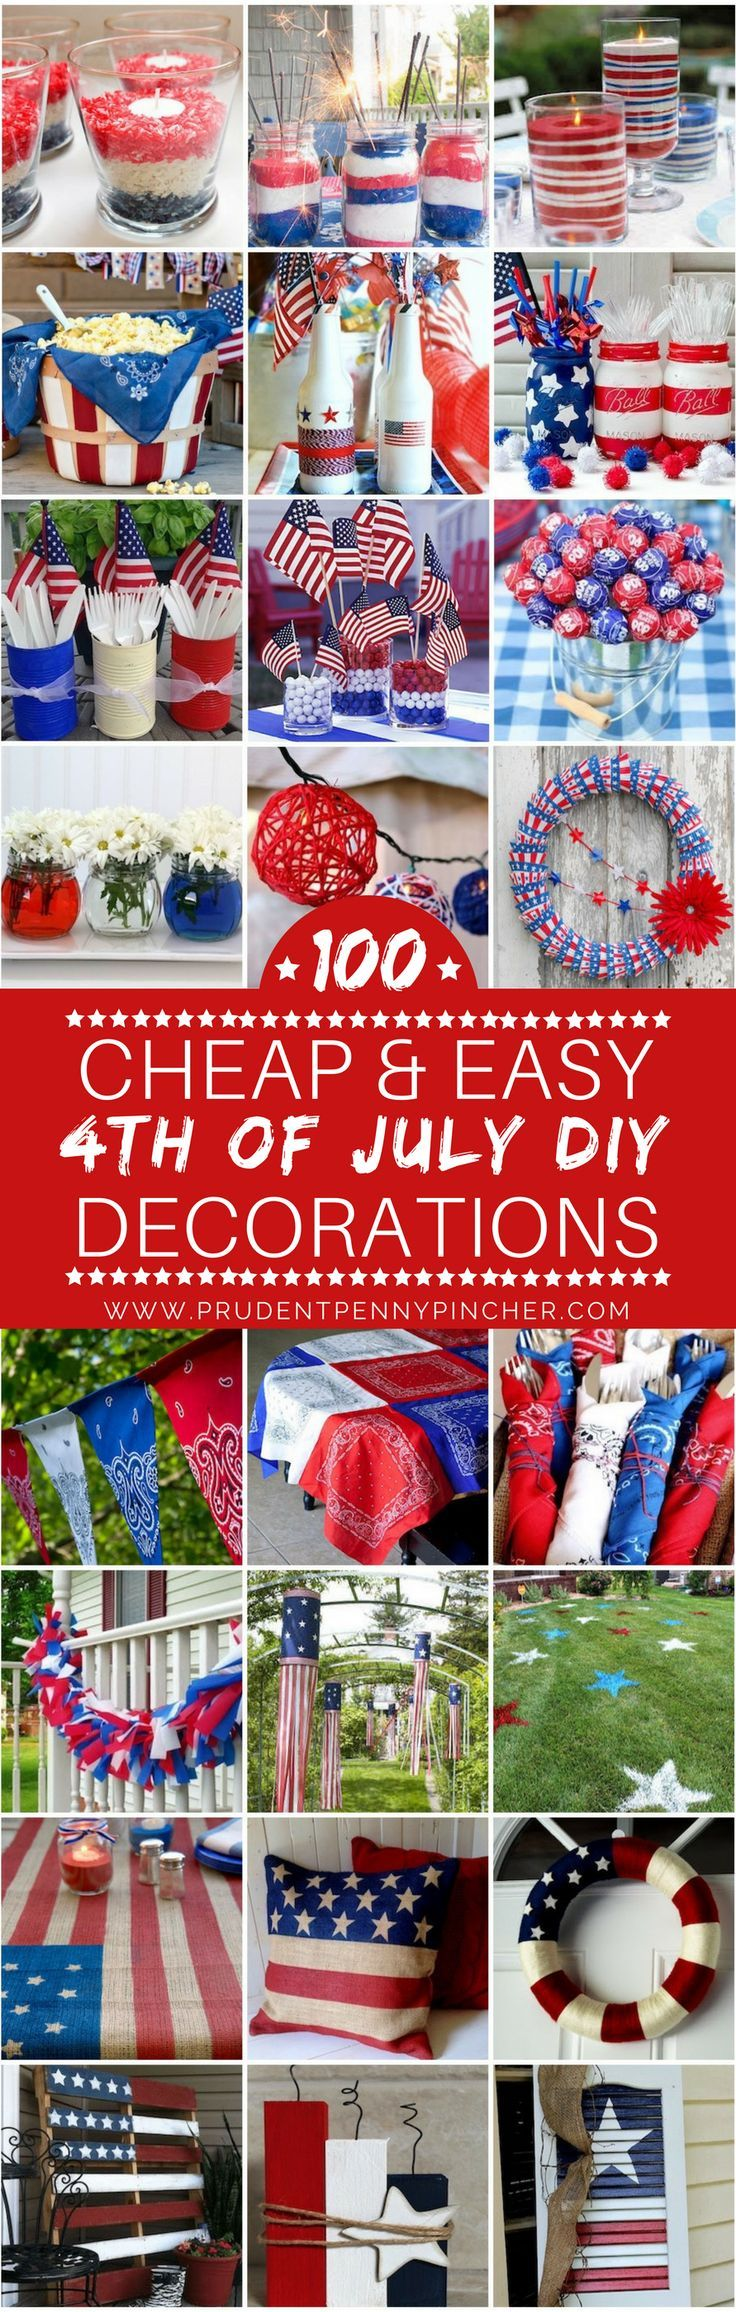 100 Cheap And Easy Diy 4th Of July Decorations 4th Of July Decorations 4th Of July July Crafts